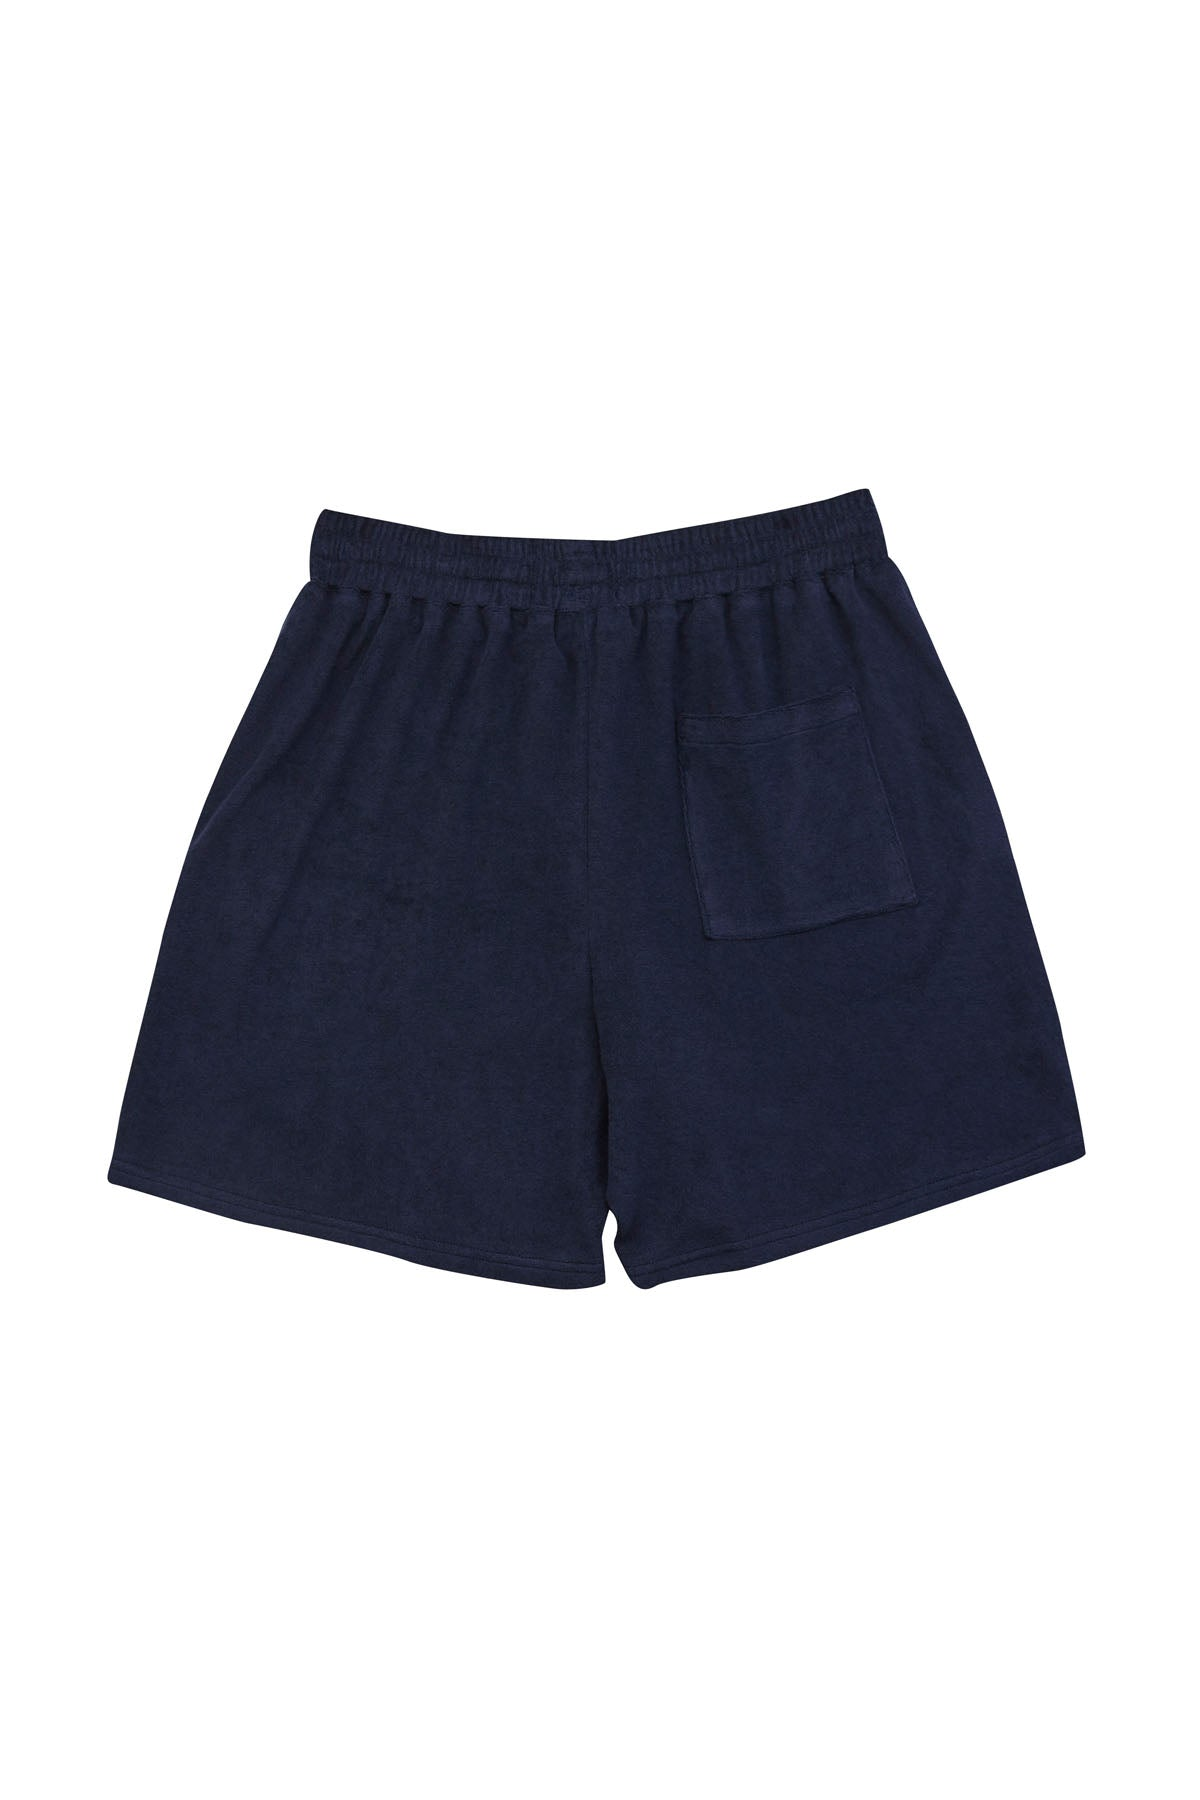 TOWEL SHORTS_NAVY